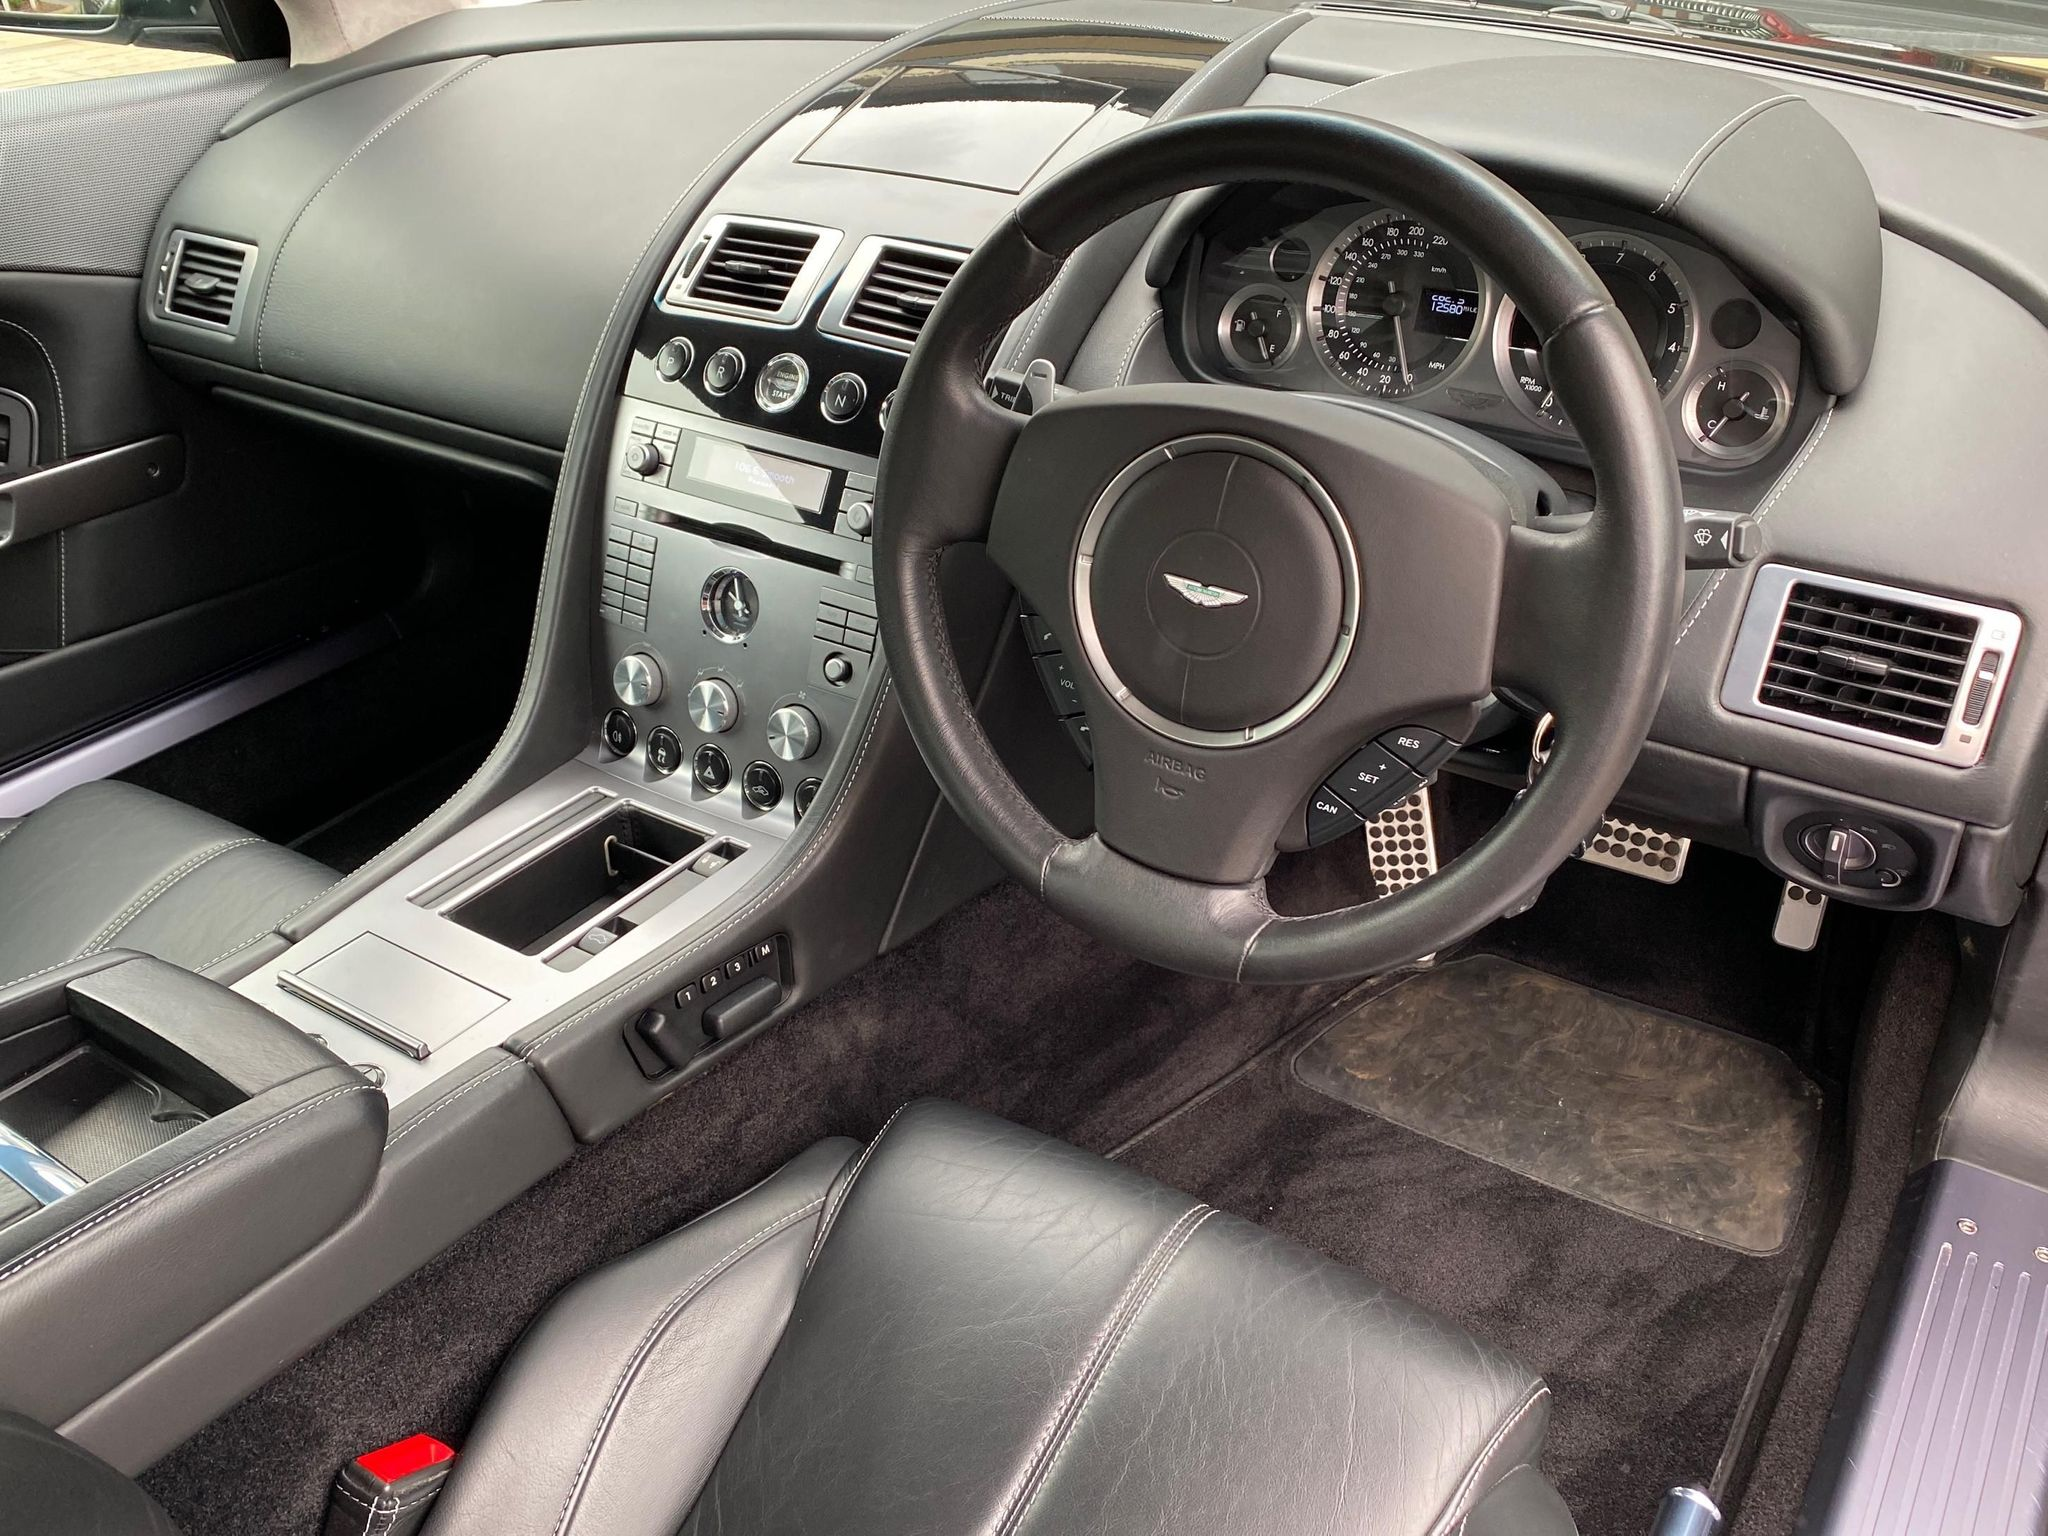 Aston Martin DB9 5.9 Seq 2dr